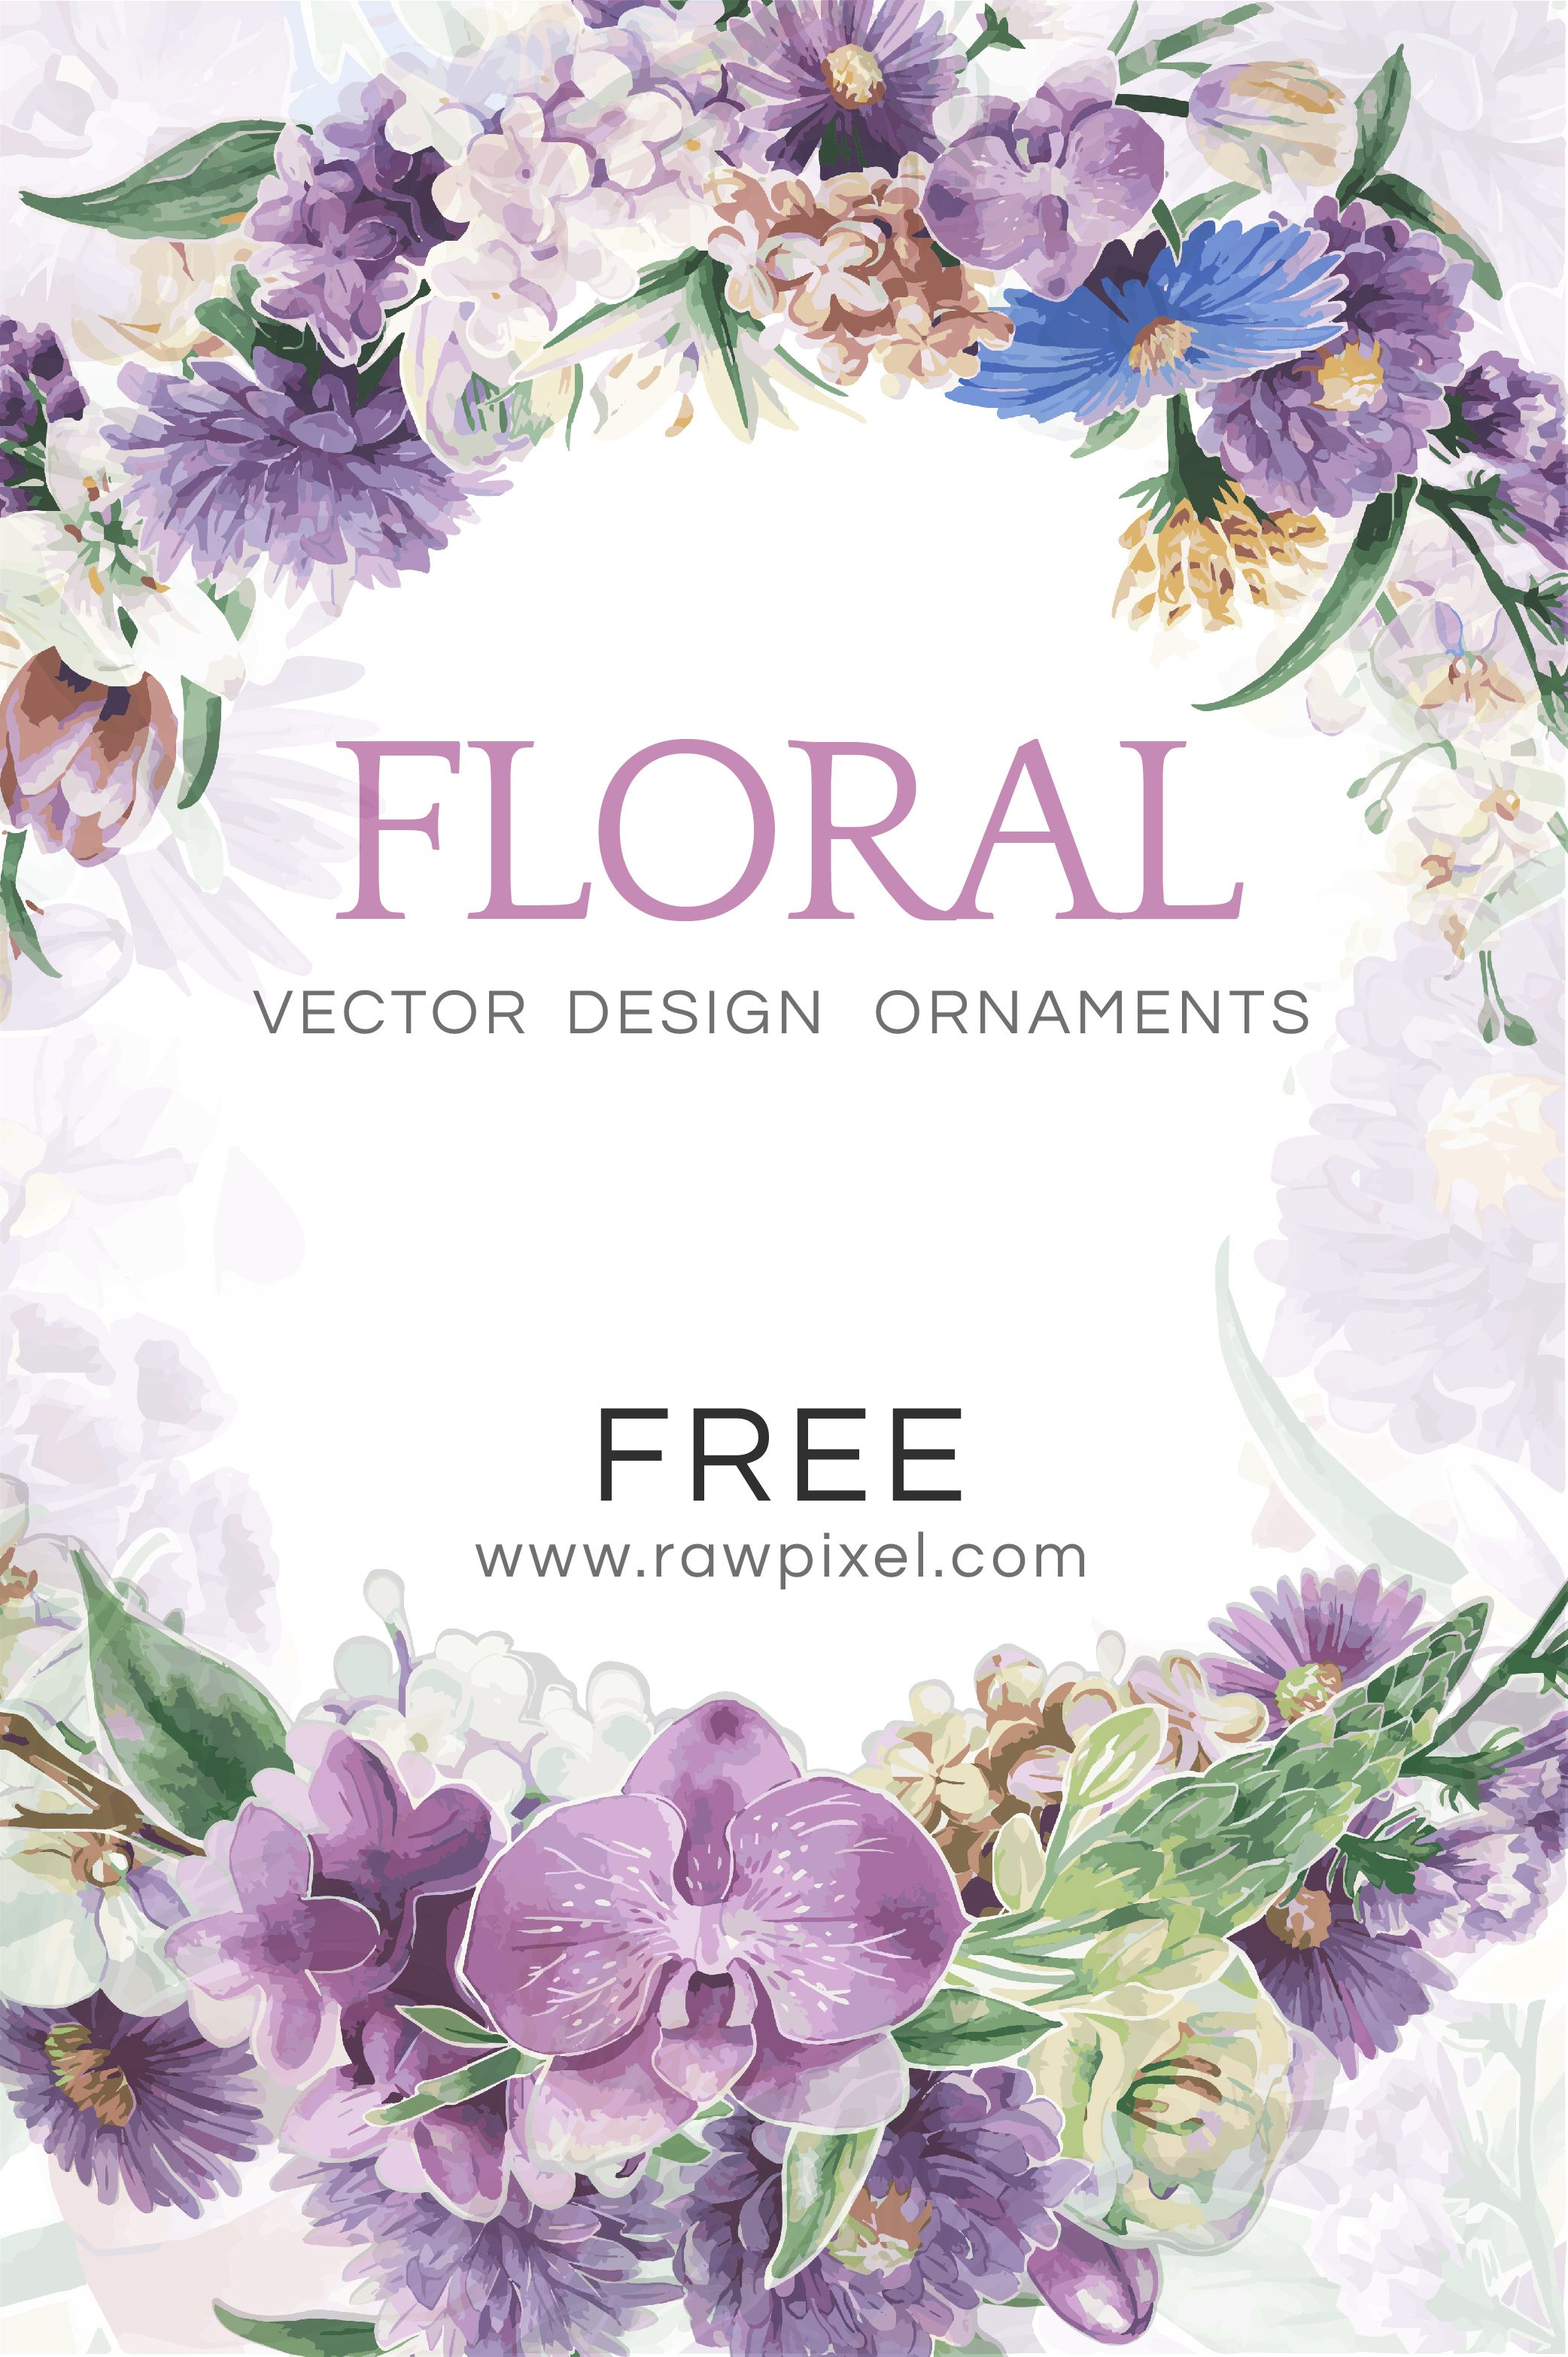 Download Free Floral Vector Design Ornaments At Rawpixel Com Free Vector Illustration Vector Design Free Design